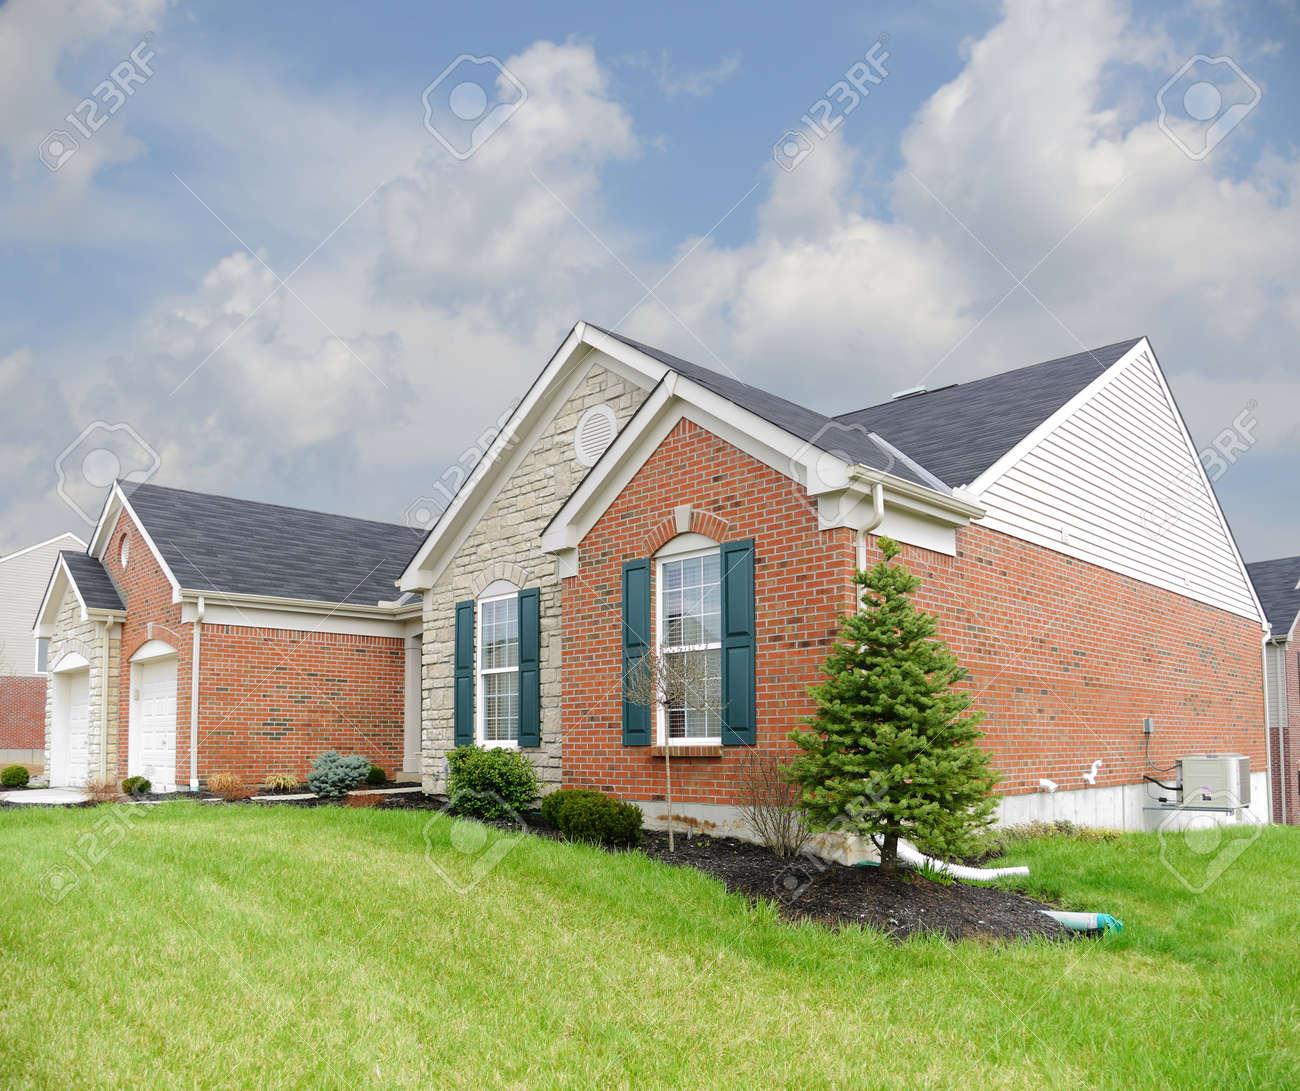 Suburban Neighborhood Brick and Stone Home - a spring day in the burbs. Stock Photo - 4541239